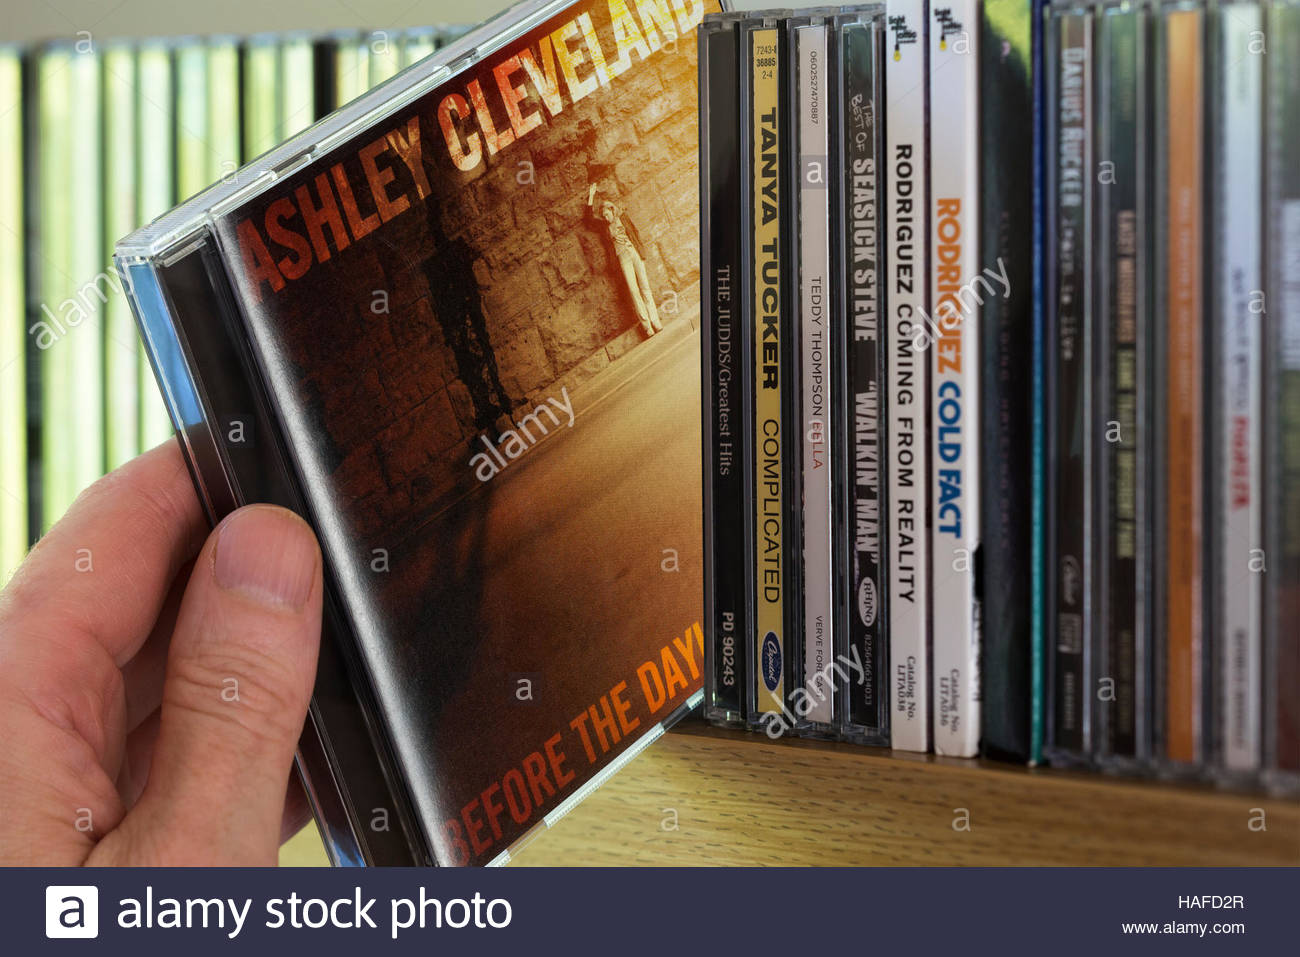 Before the Daylight's Shot, 2006 Ashley Cleveland CD being chosen from a shelf of other CD's - Stock Image